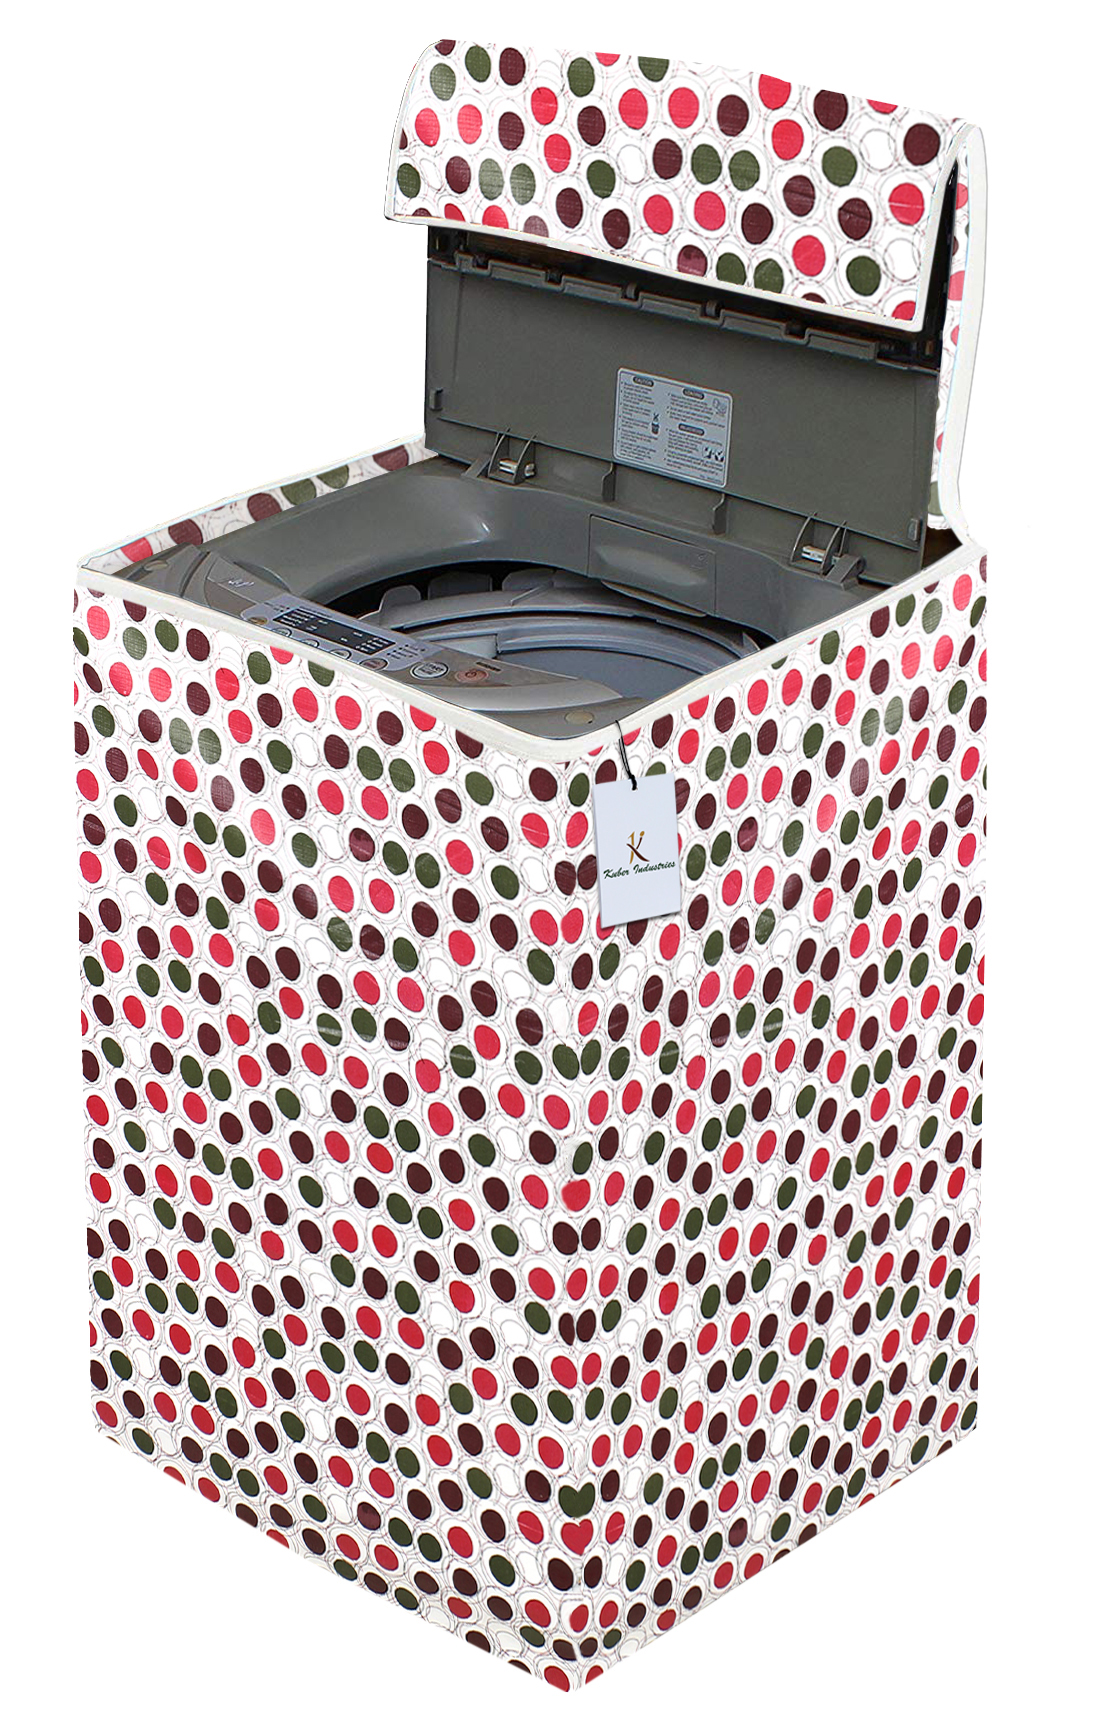 Kuber Industries Circle Design PVC Top Load Fully Automatic Washing Machine Cover (Brown)